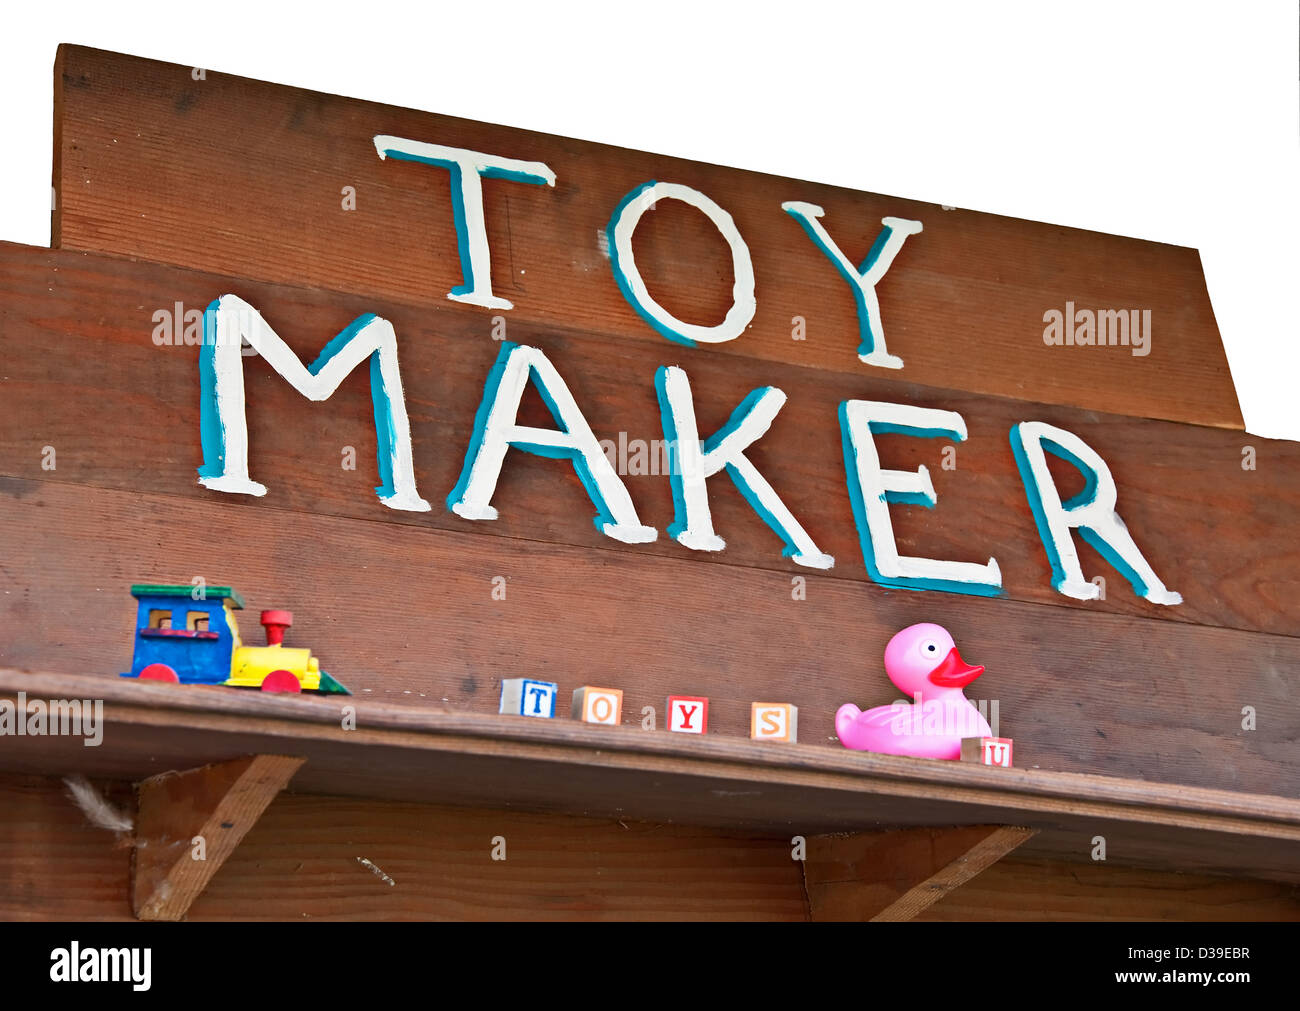 Pink Rubber Duck Stock Photos & Pink Rubber Duck Stock Images - Alamy